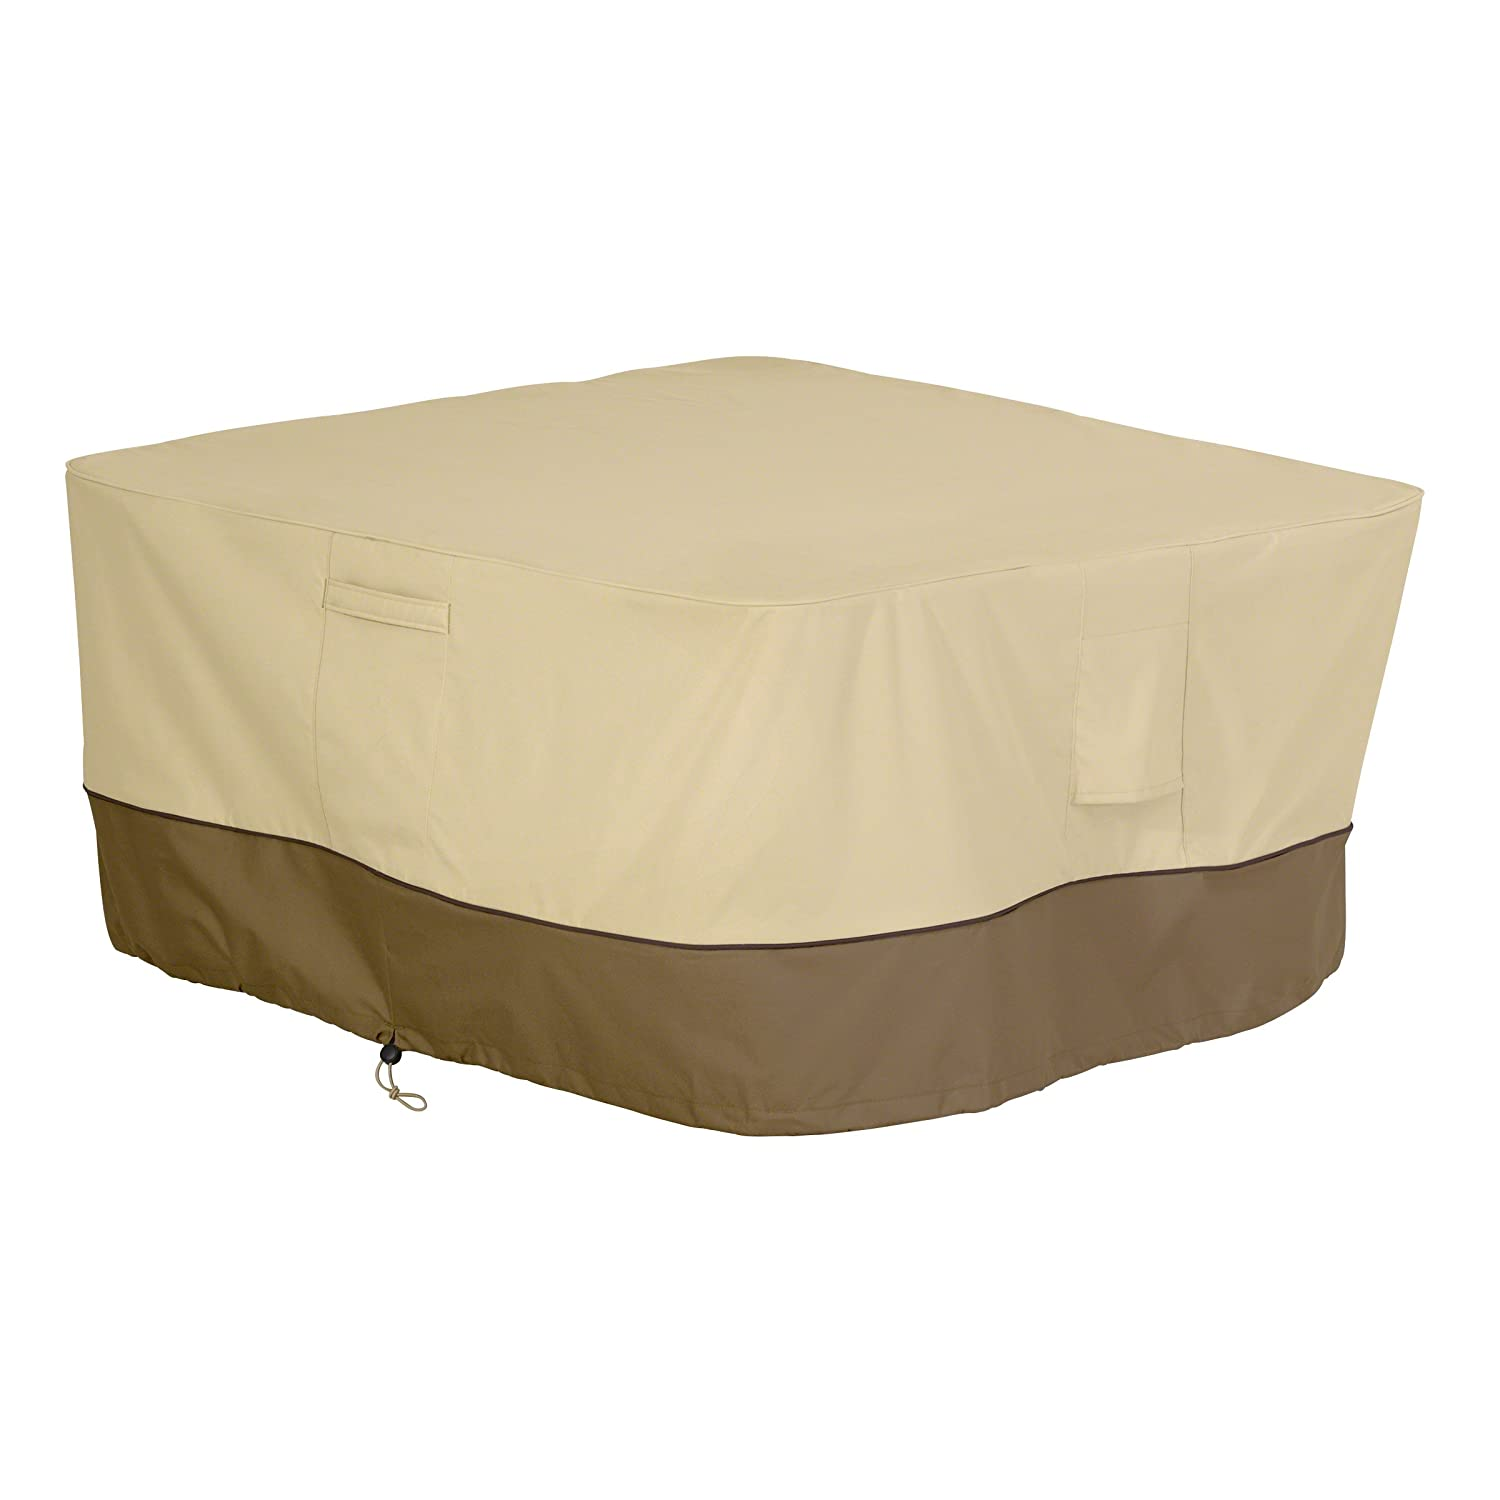 Classic Accessories Veranda Square Fire Pit/Table Cover, 42-Inch